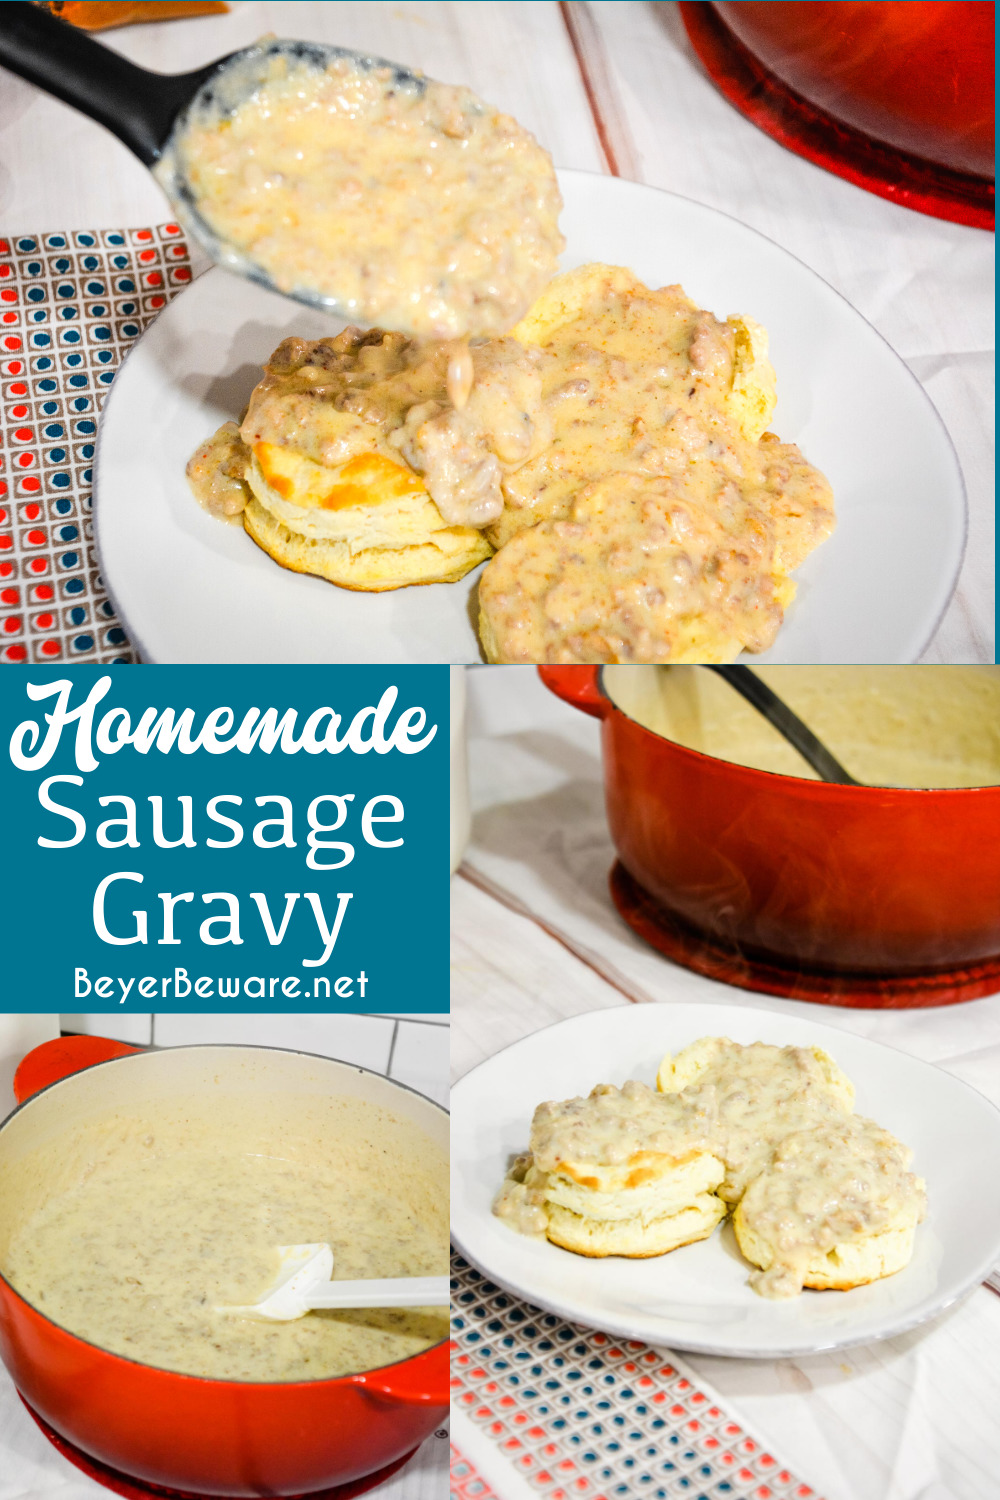 Homemade sausage gravy is a simple white gravy with breakfast sausage recipe perfect for easy biscuits and gravy breakfast made regularly for breakfast since it is so easy to make.